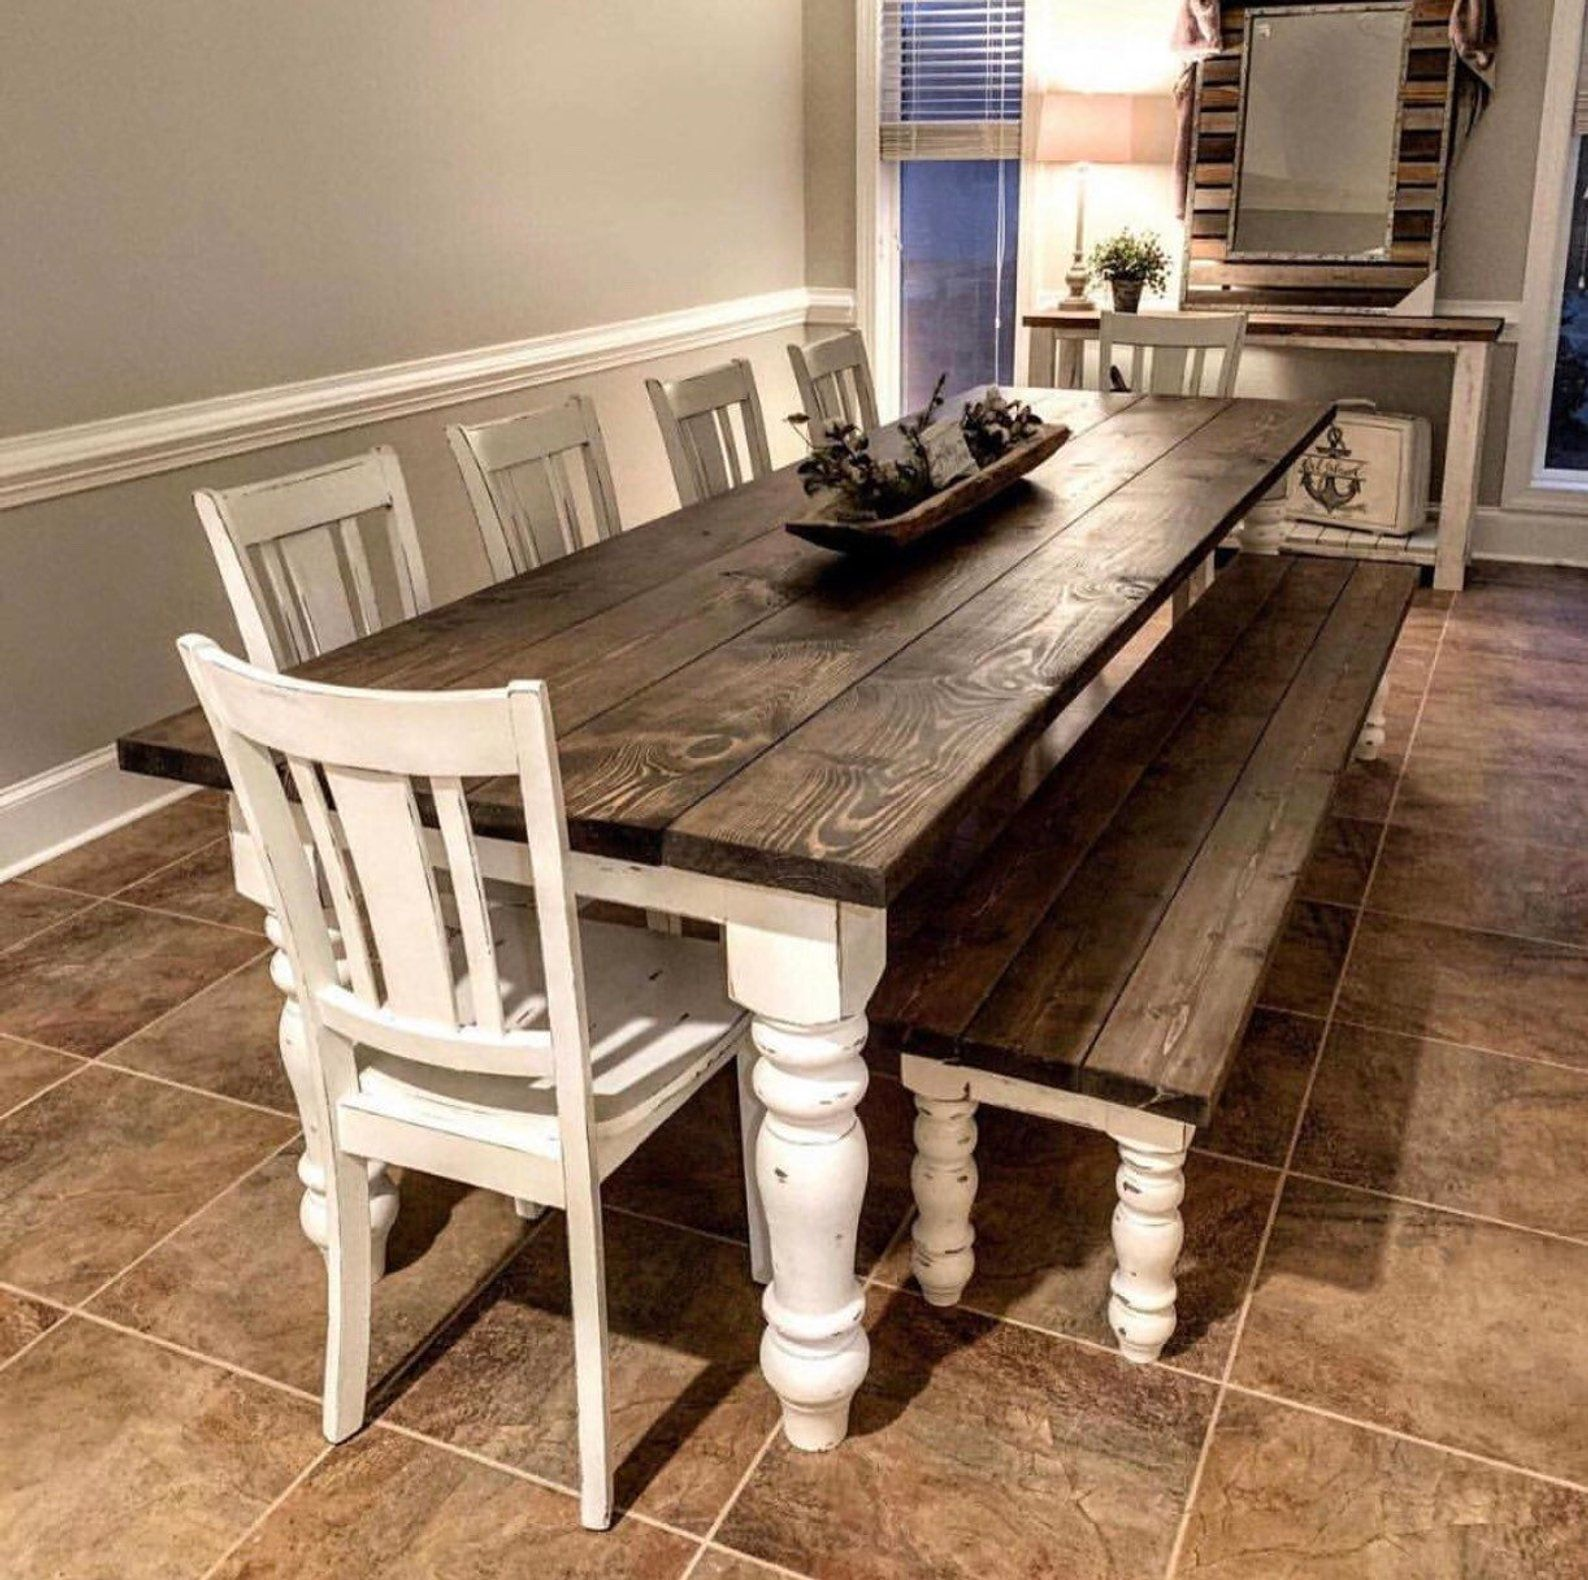 Chunky Maple Unfinished Farmhouse Dining Table Legs Set Of Etsy In 2020 Farmhouse Dining Room Table Farmhouse Style Kitchen Farmhouse Dining